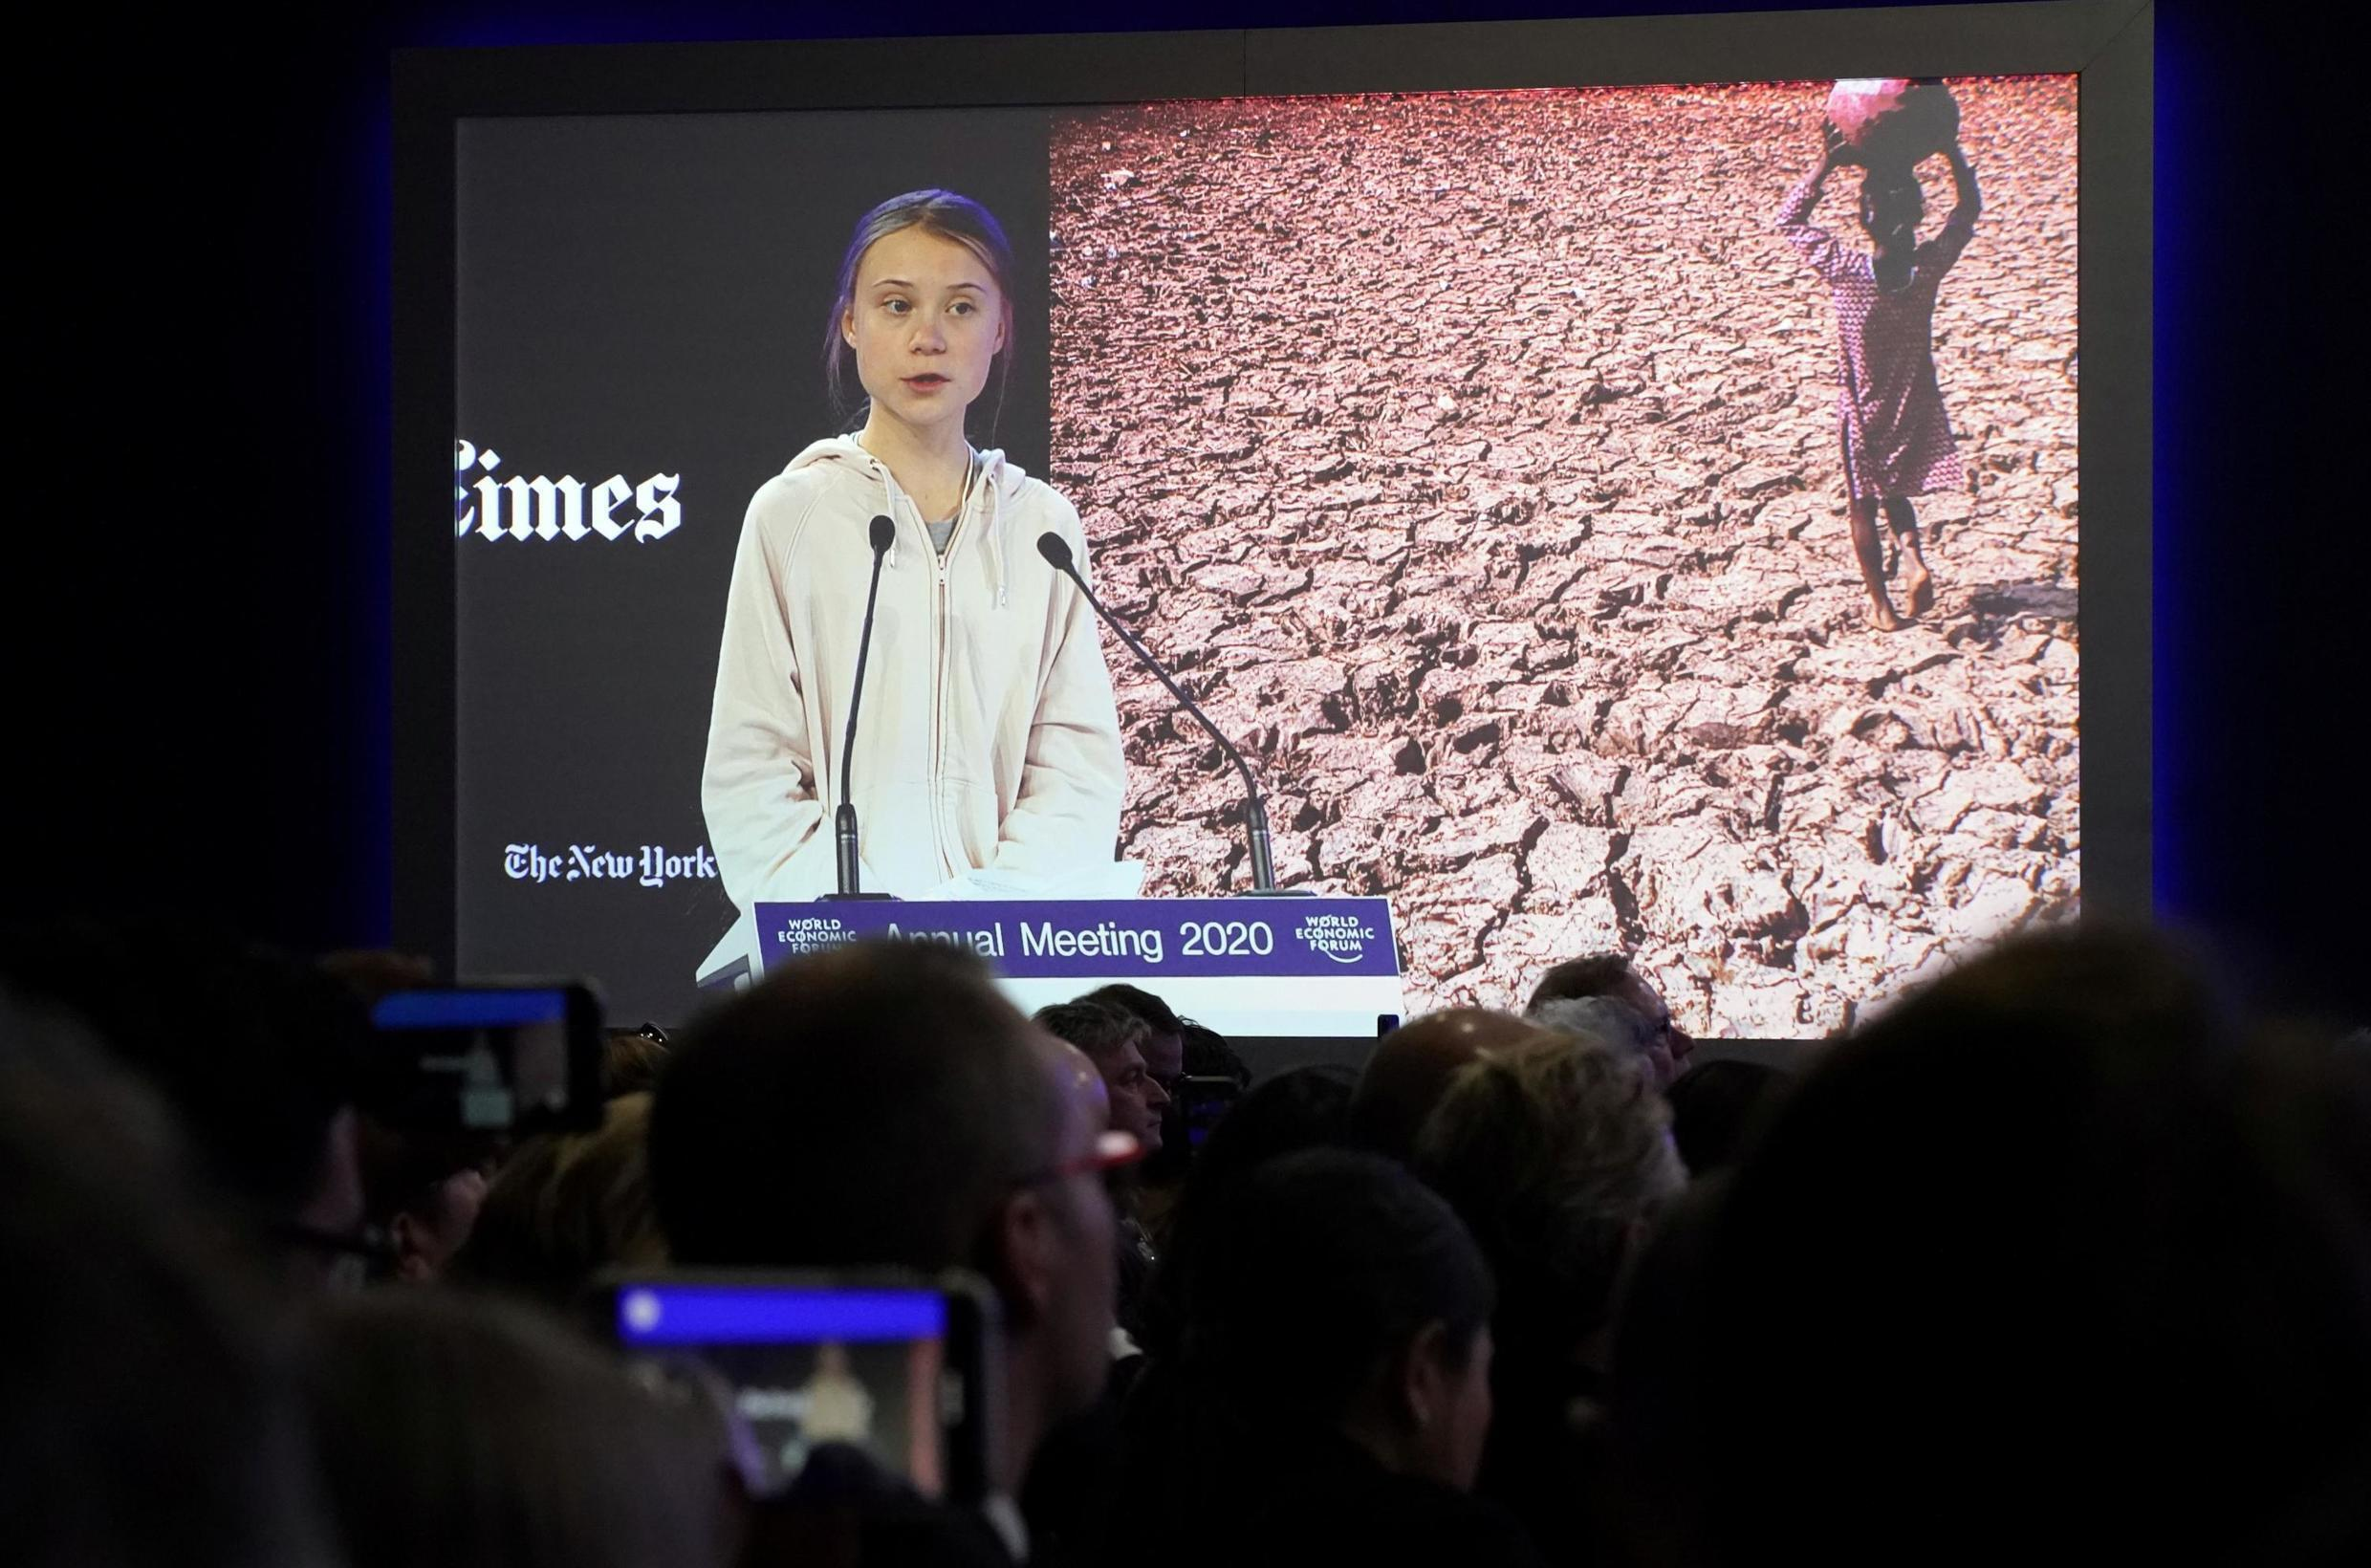 Swedish climate change activist Greta Thunberg speaks during a session at the 50th World Economic Forum (WEF) annual meeting in Davos, Switzerland, January 21, 2020.